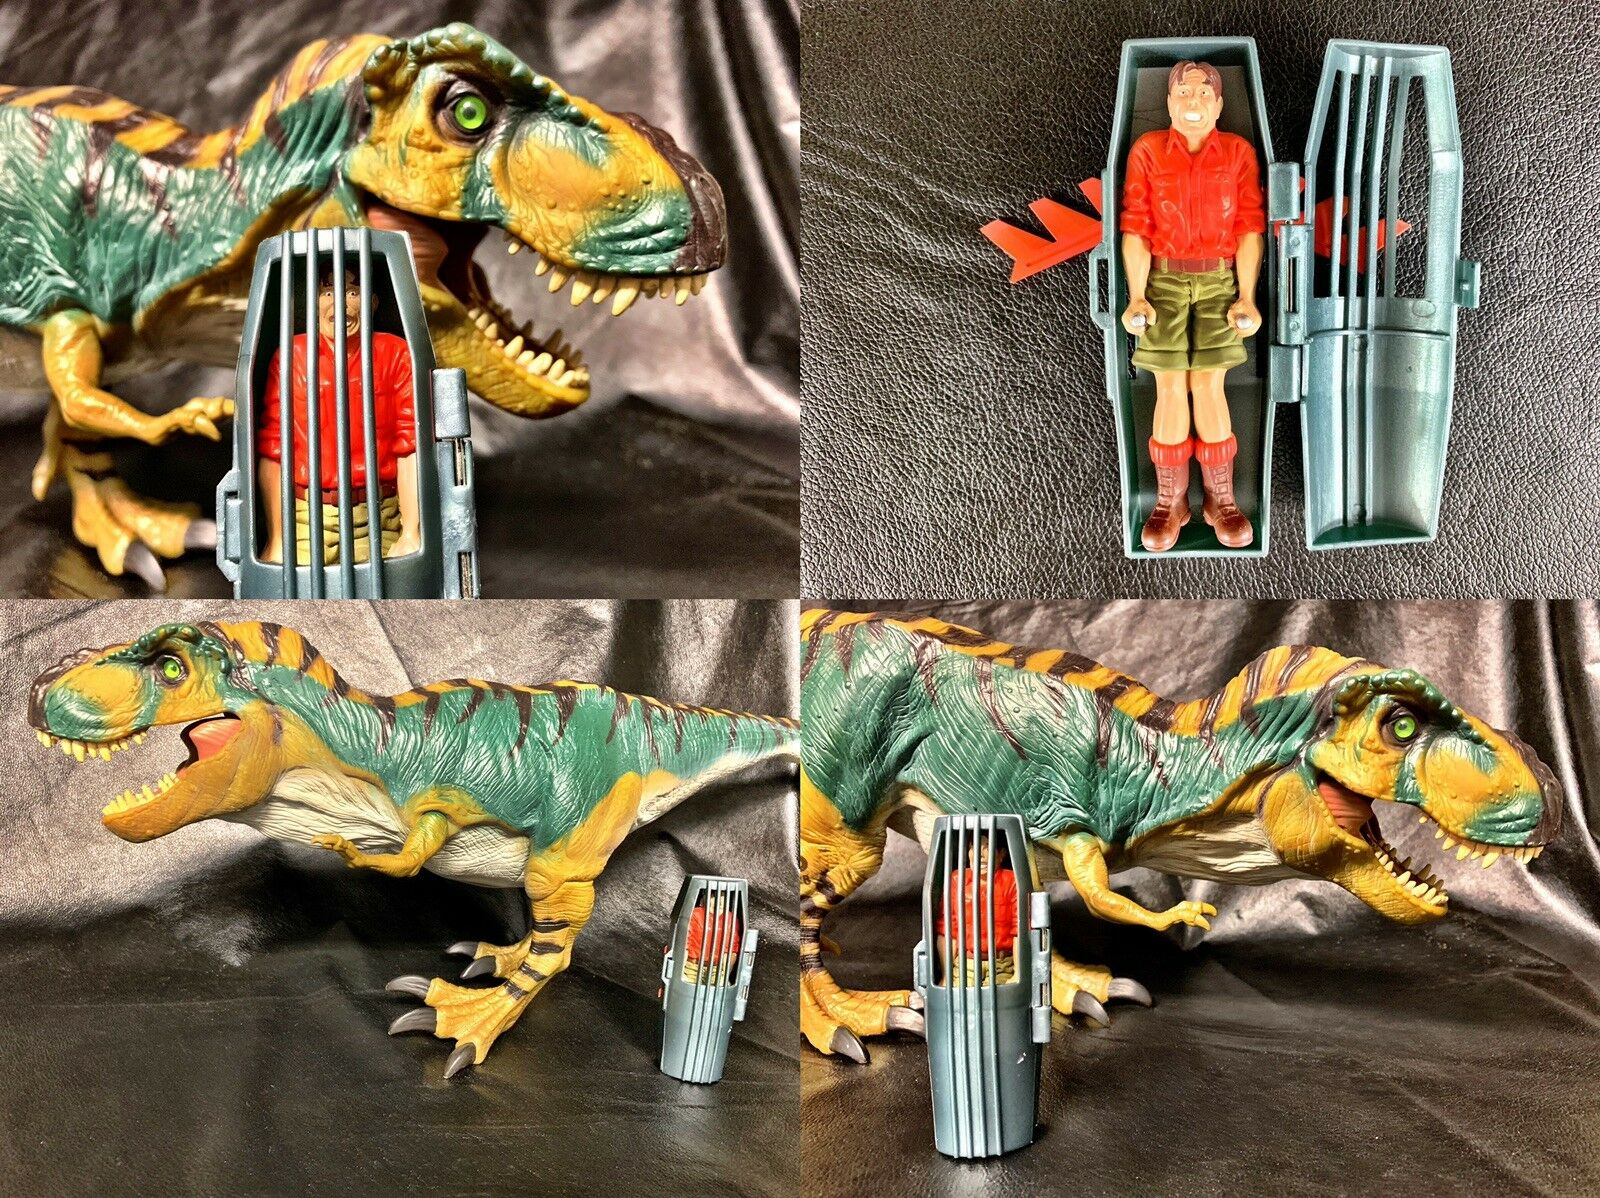 1997 KENNER JURASSIC PARK LOST WORLD BULL T-REX 100% COMPLETE WORKING VINTAGE